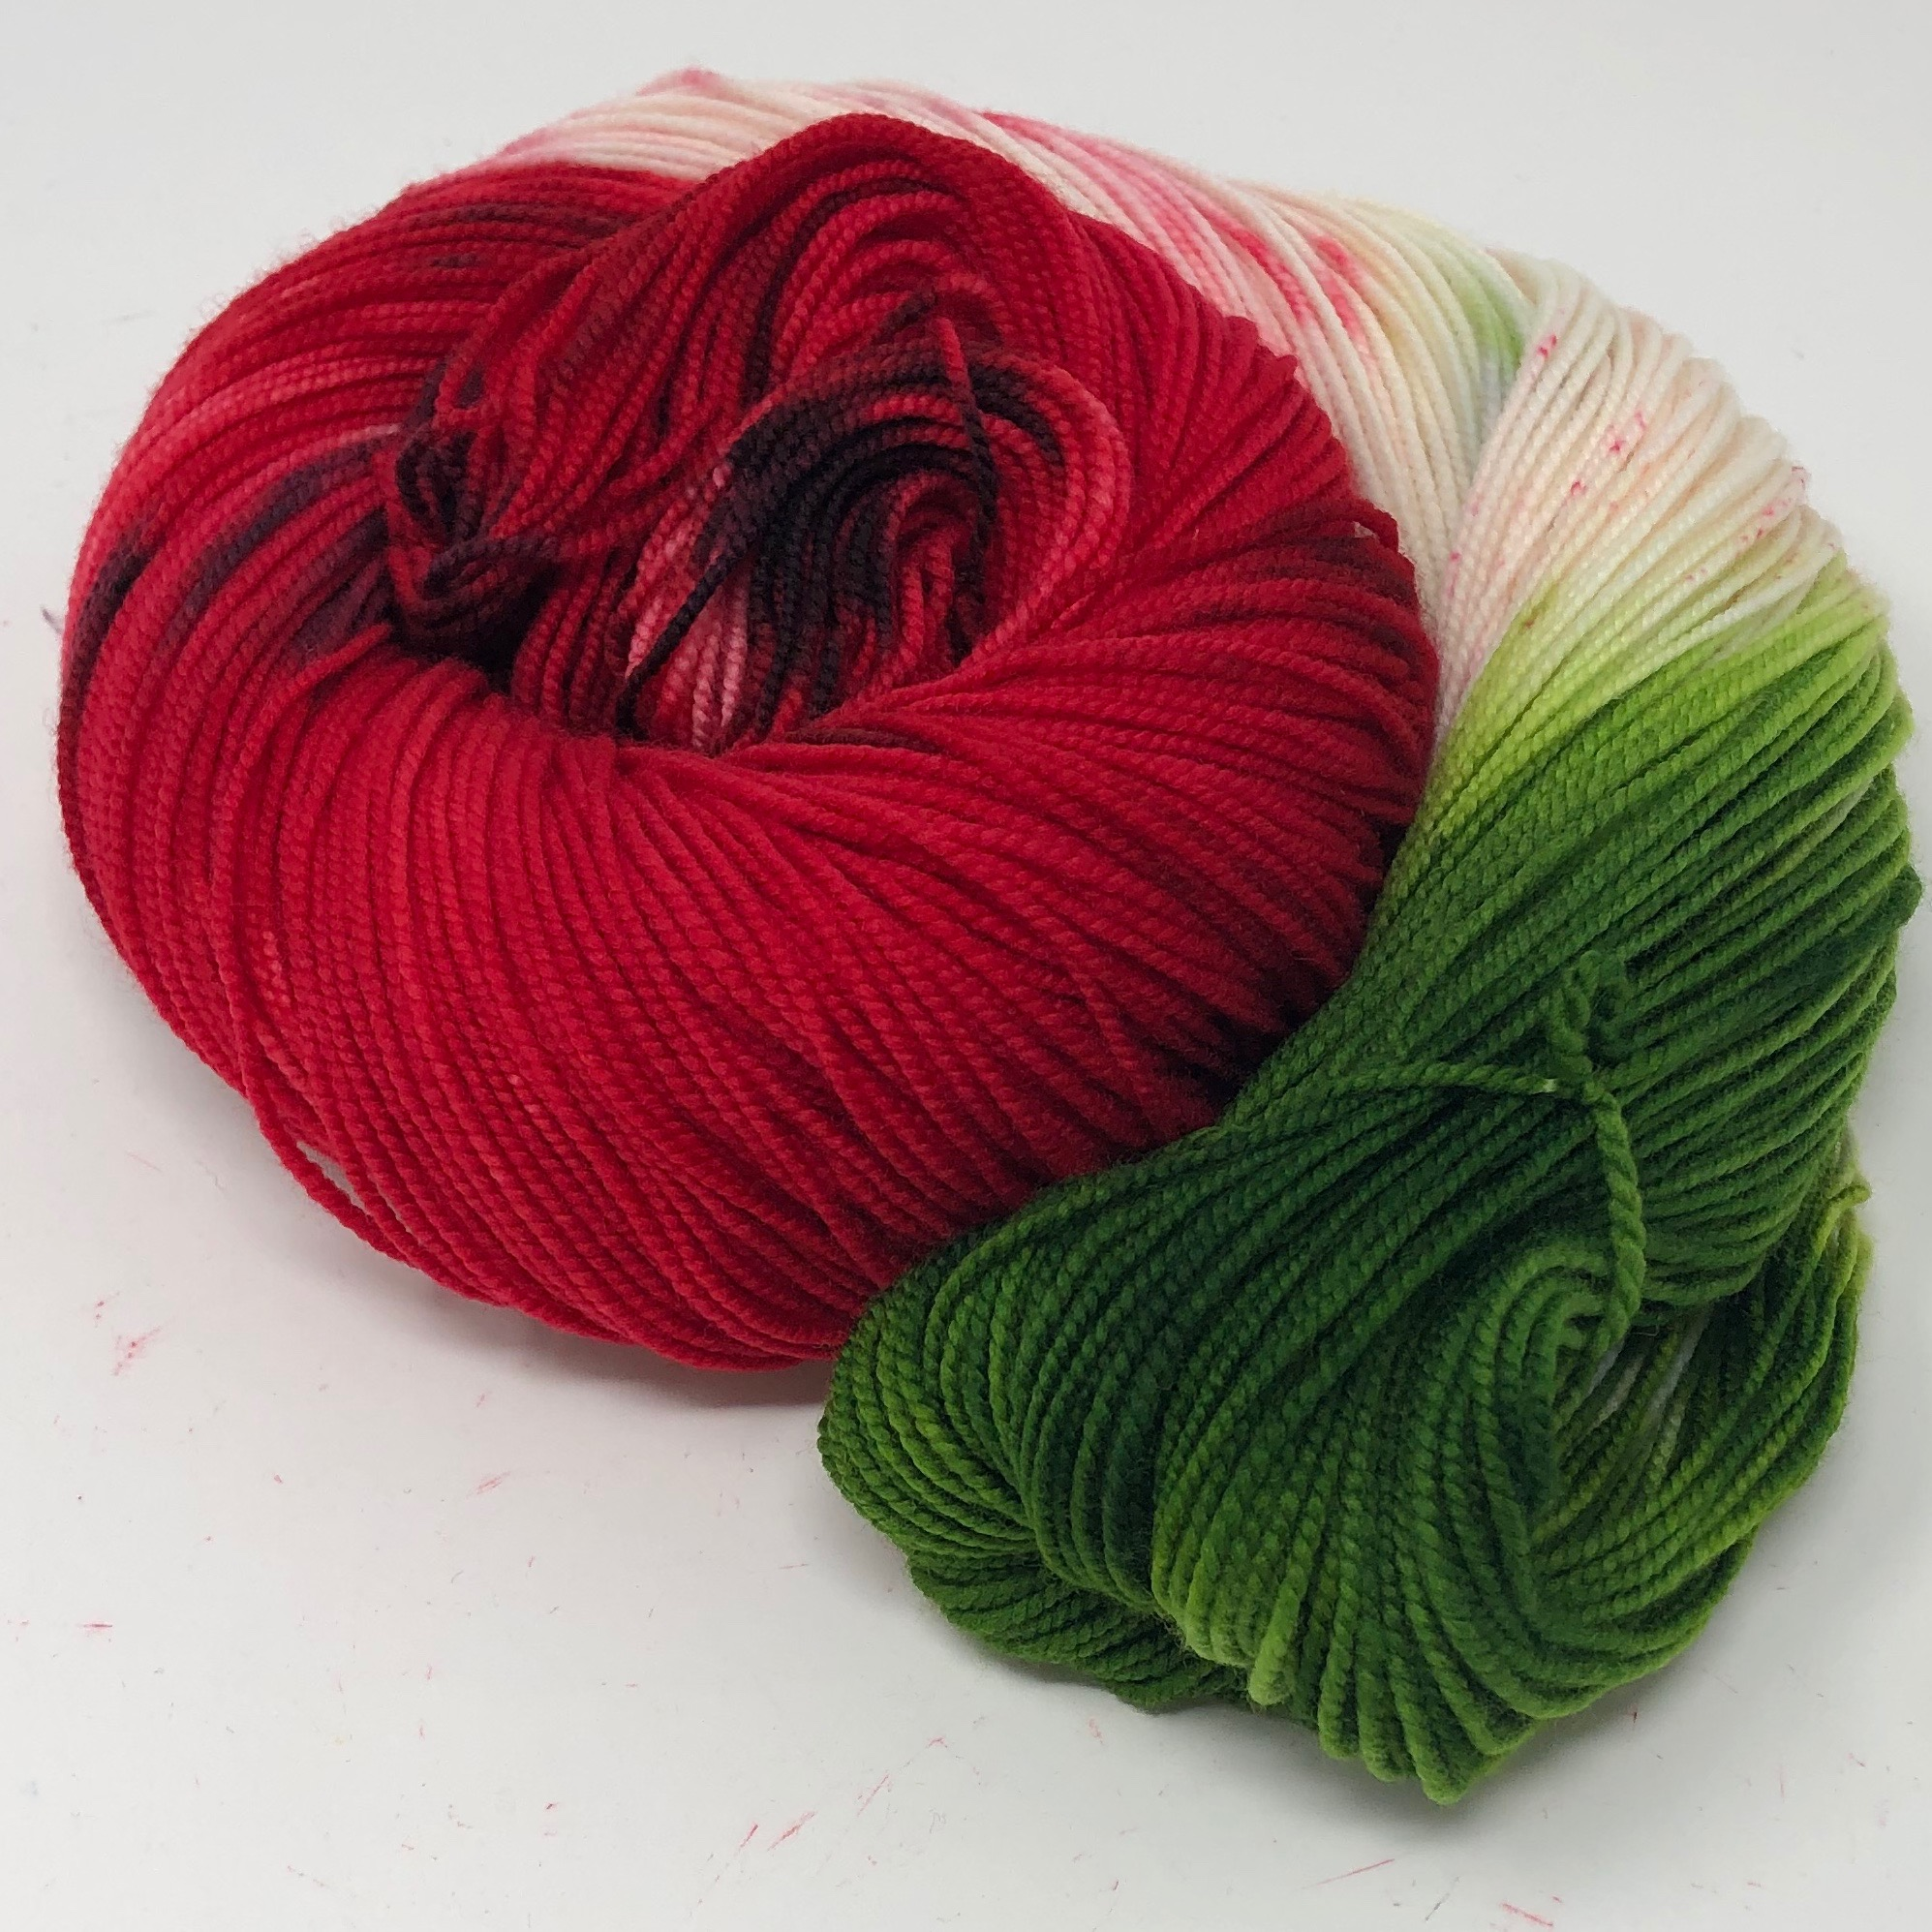 A skein of our Seed Spitting Contest, the colorway we created to celebrate National Watermelon Day